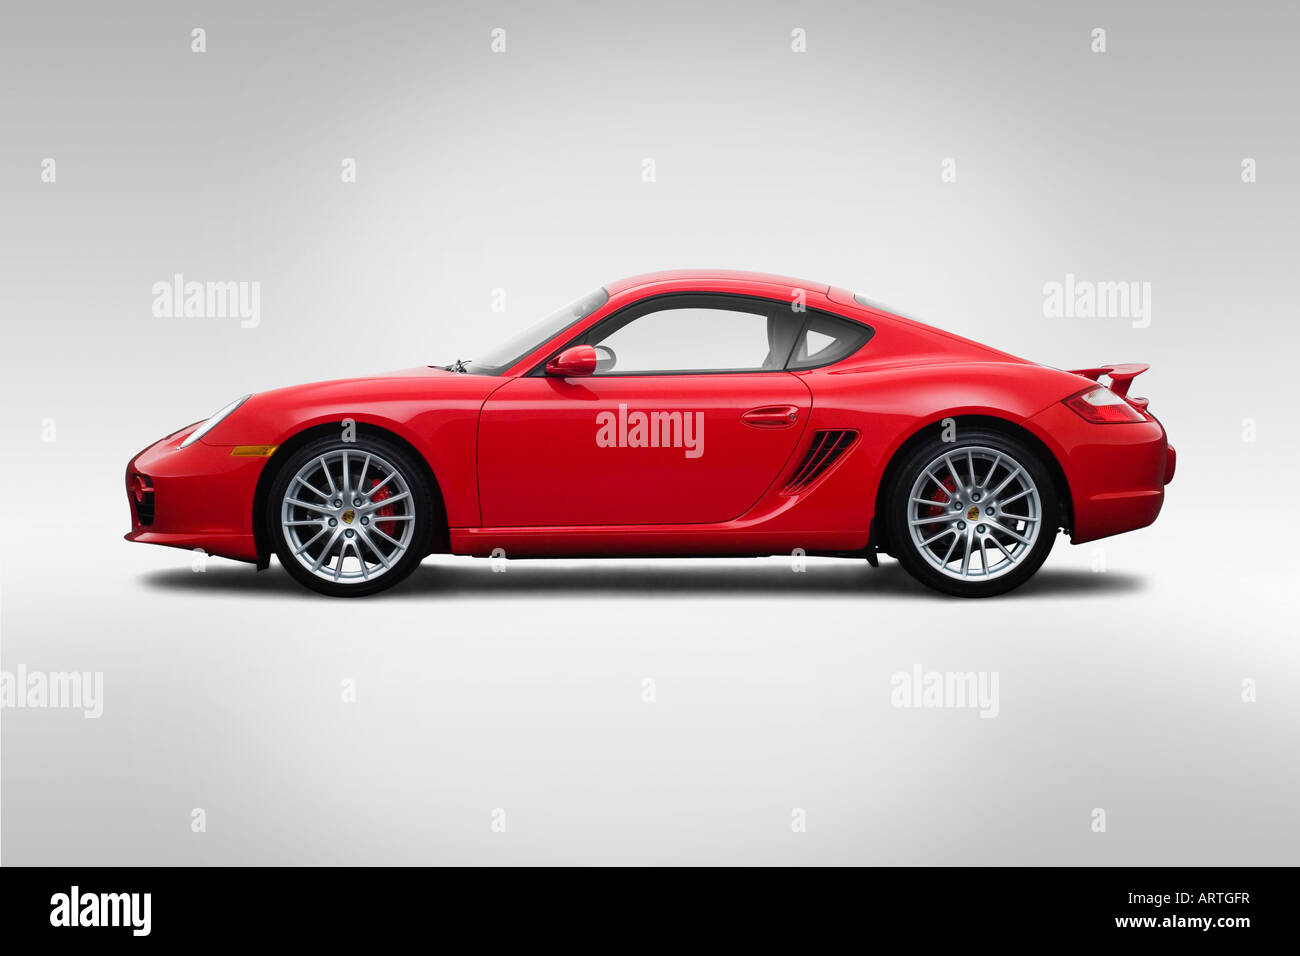 Porsche Cayman S Red Stock Photos Porsche Cayman S Red